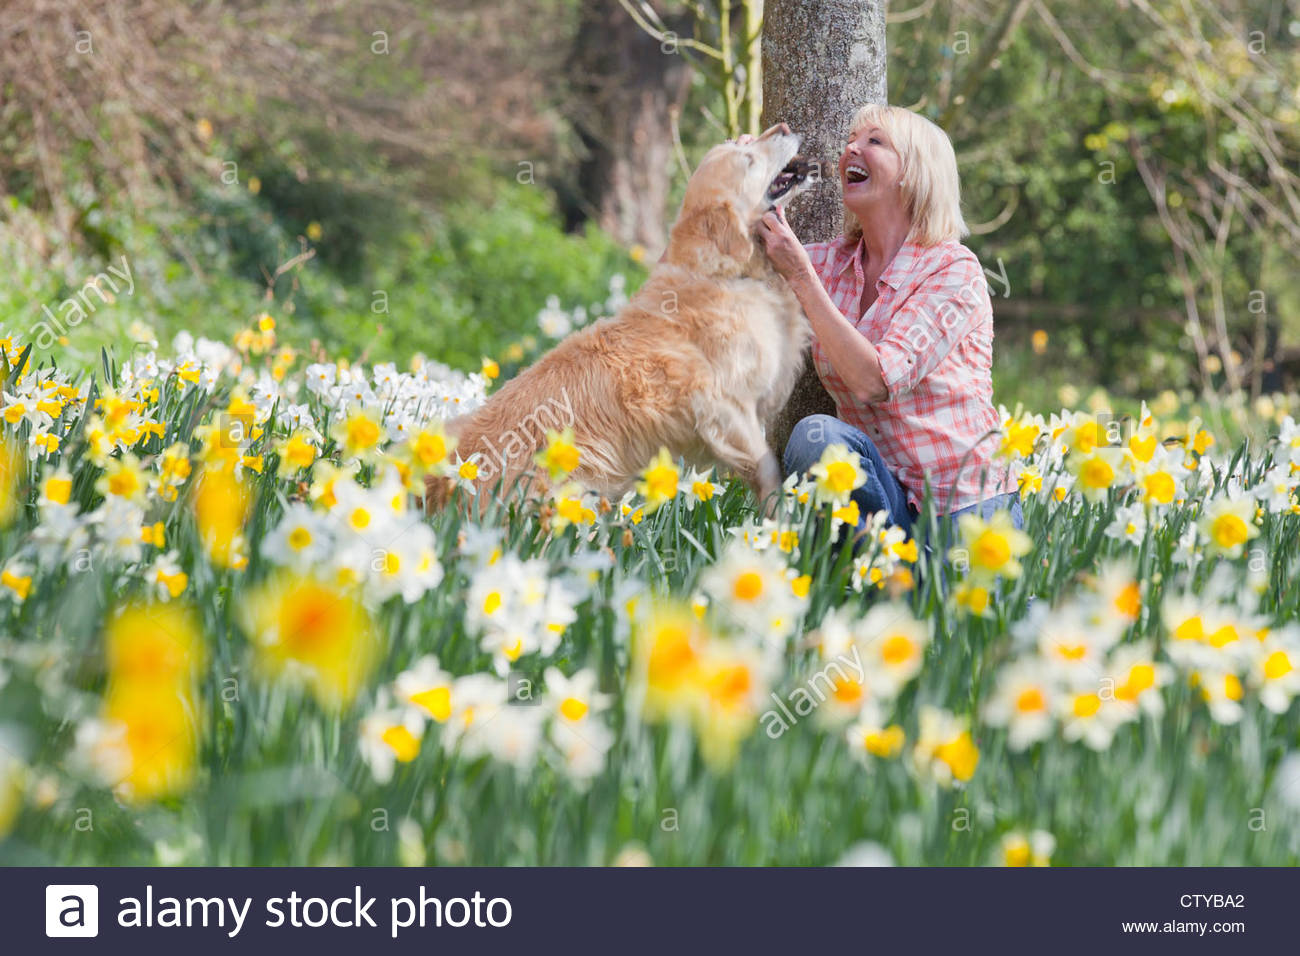 Happy woman playing with dog in sunny daffodil field - Stock Image